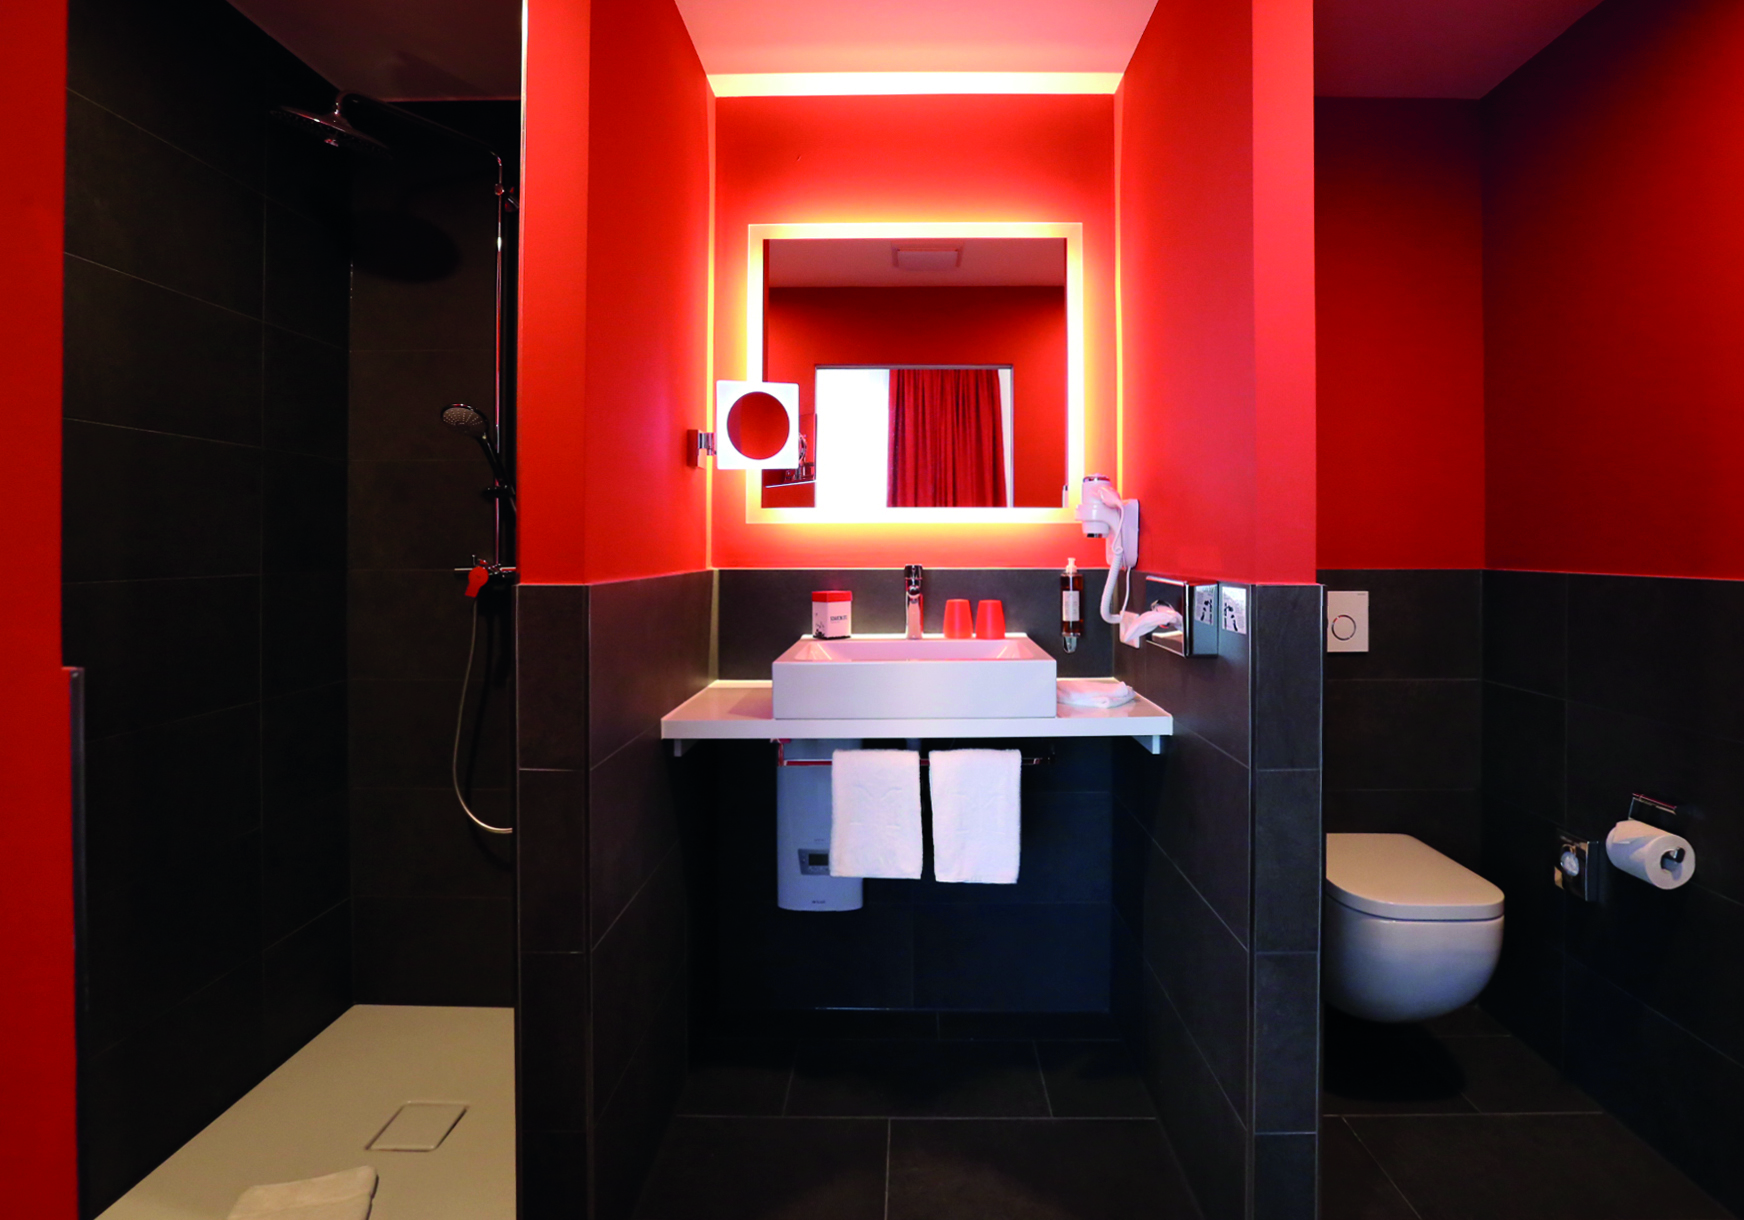 In the bathrooms of the Dormero Hotel in Roth, red walls and black tiles meet elegant washbasins and showers from the Kaldewei Cono series made from enamelled steel in alpine white. © Dormero Hotel AG